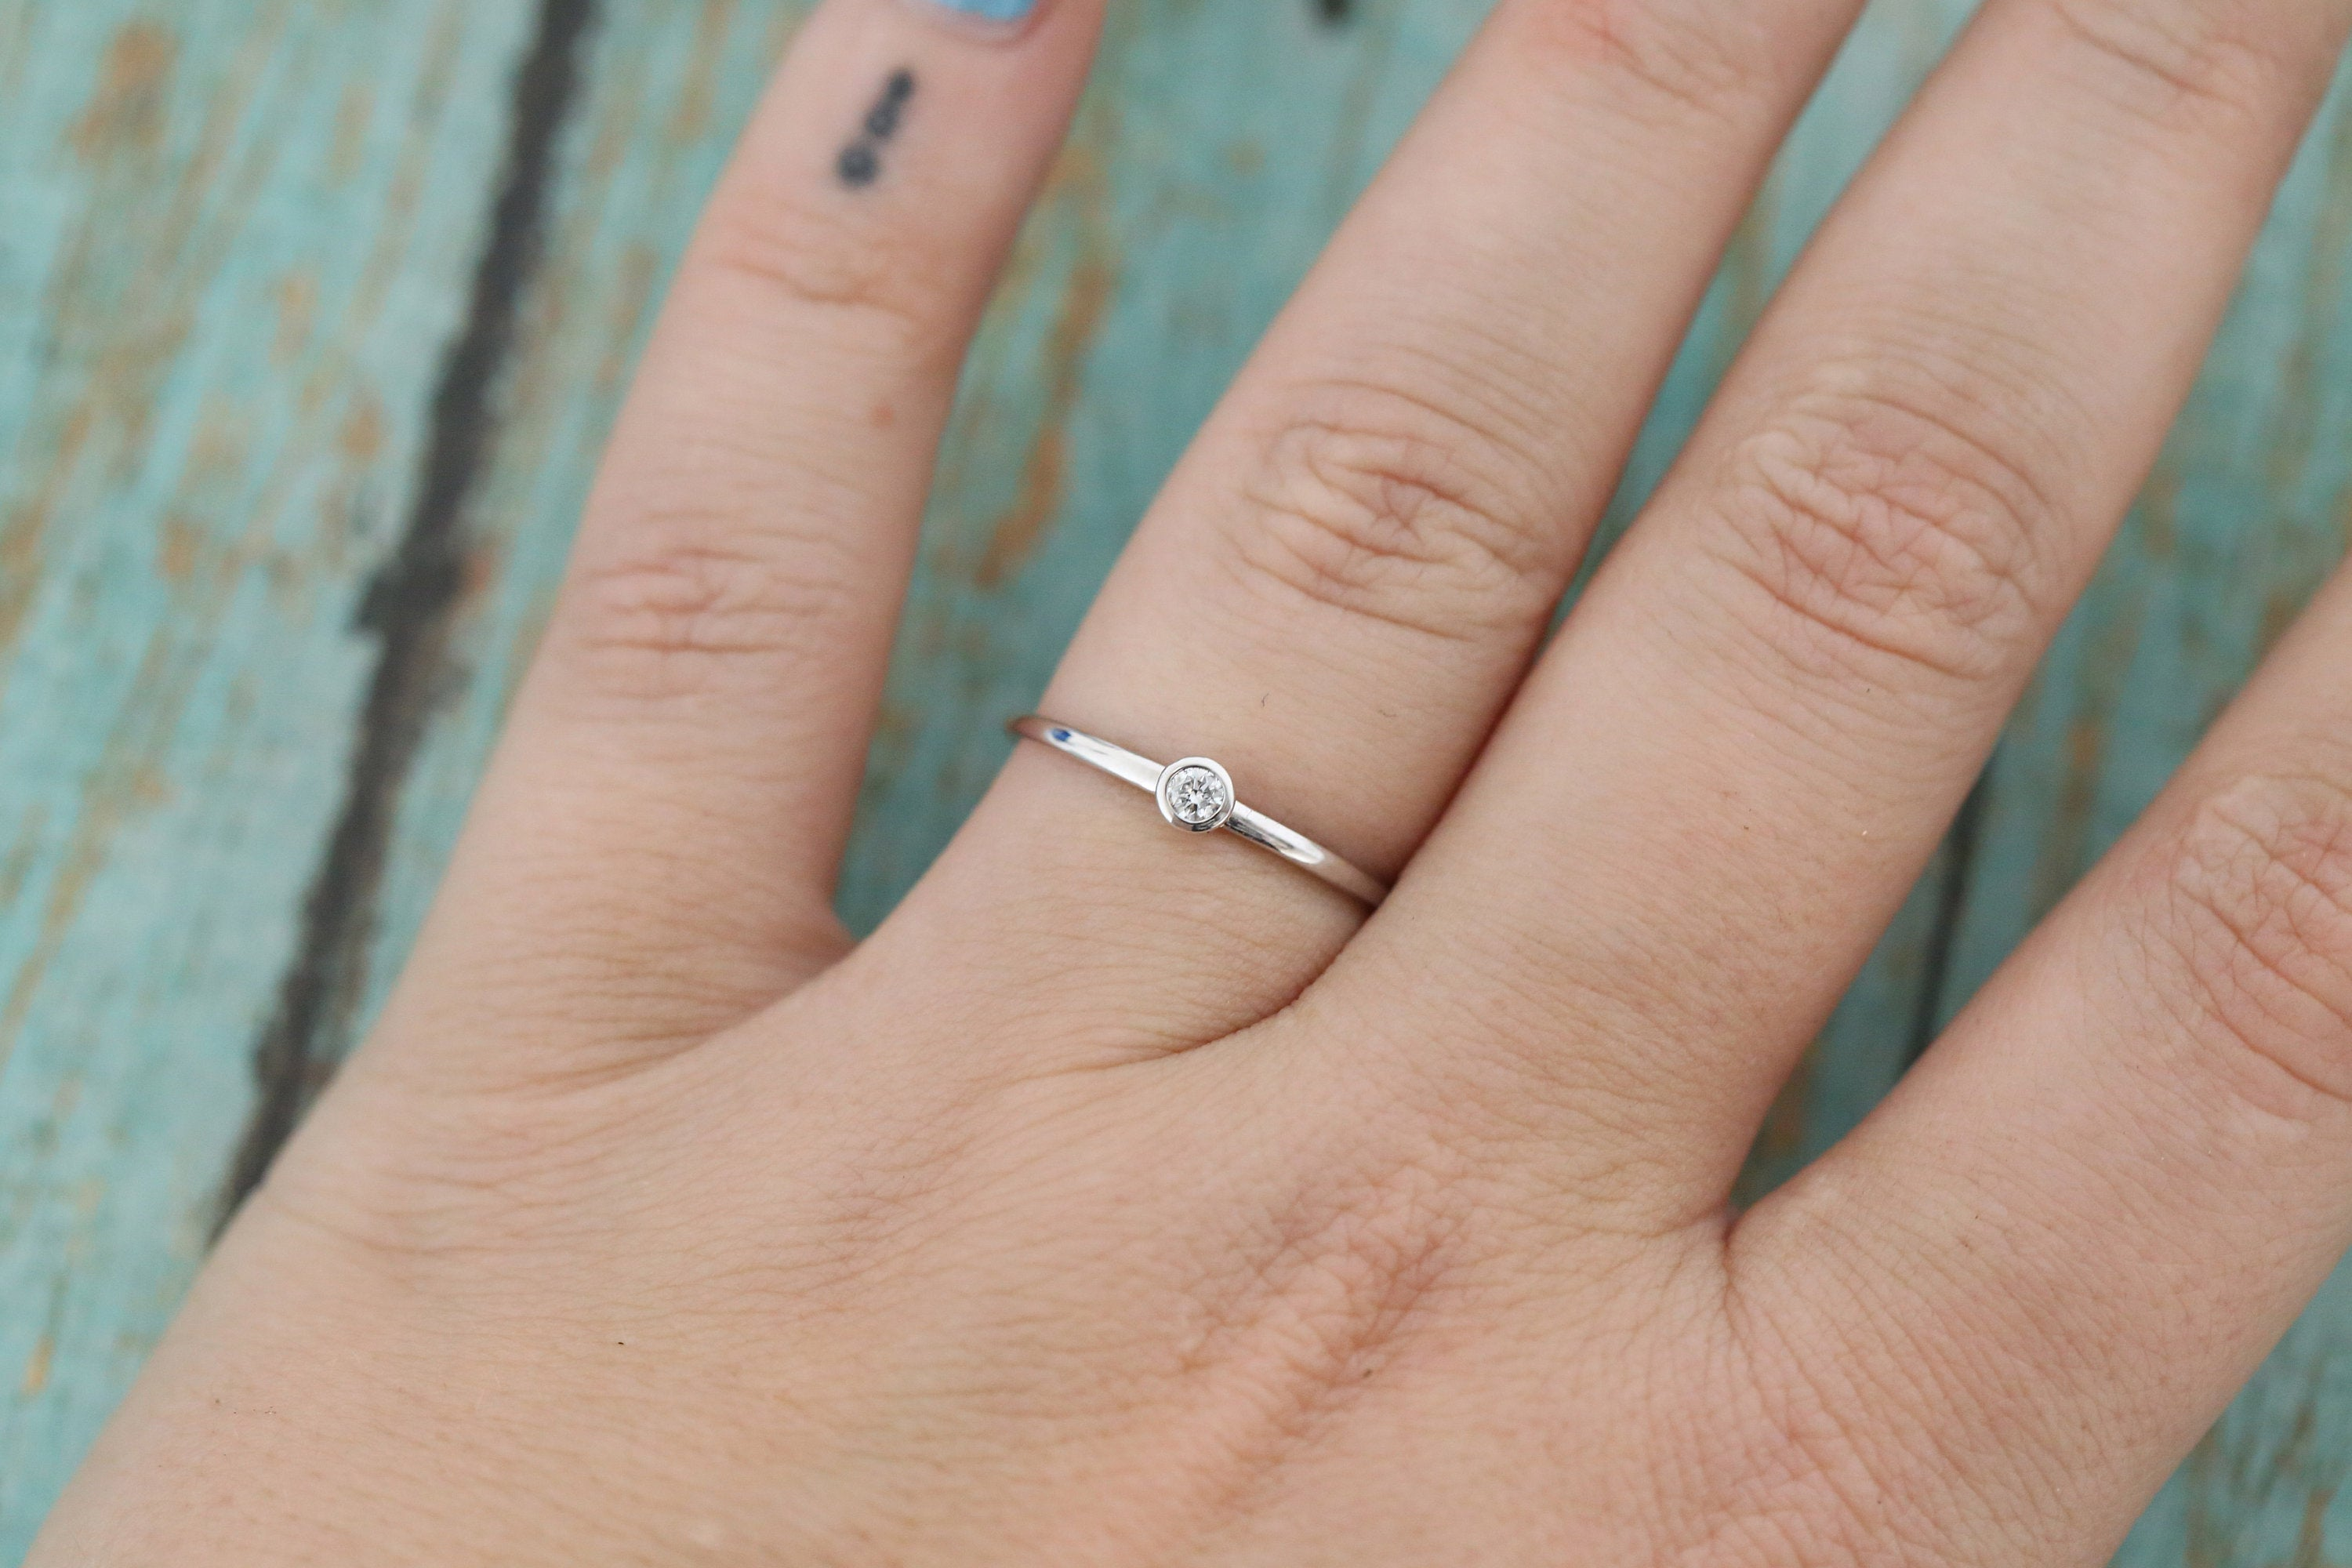 14k White Gold and Diamond Cremation Ring - Diamond Stacking Ring - Cremation Jewelry - Ash Ring - Ash Jewelry - Pet Loss - Cremation Ring